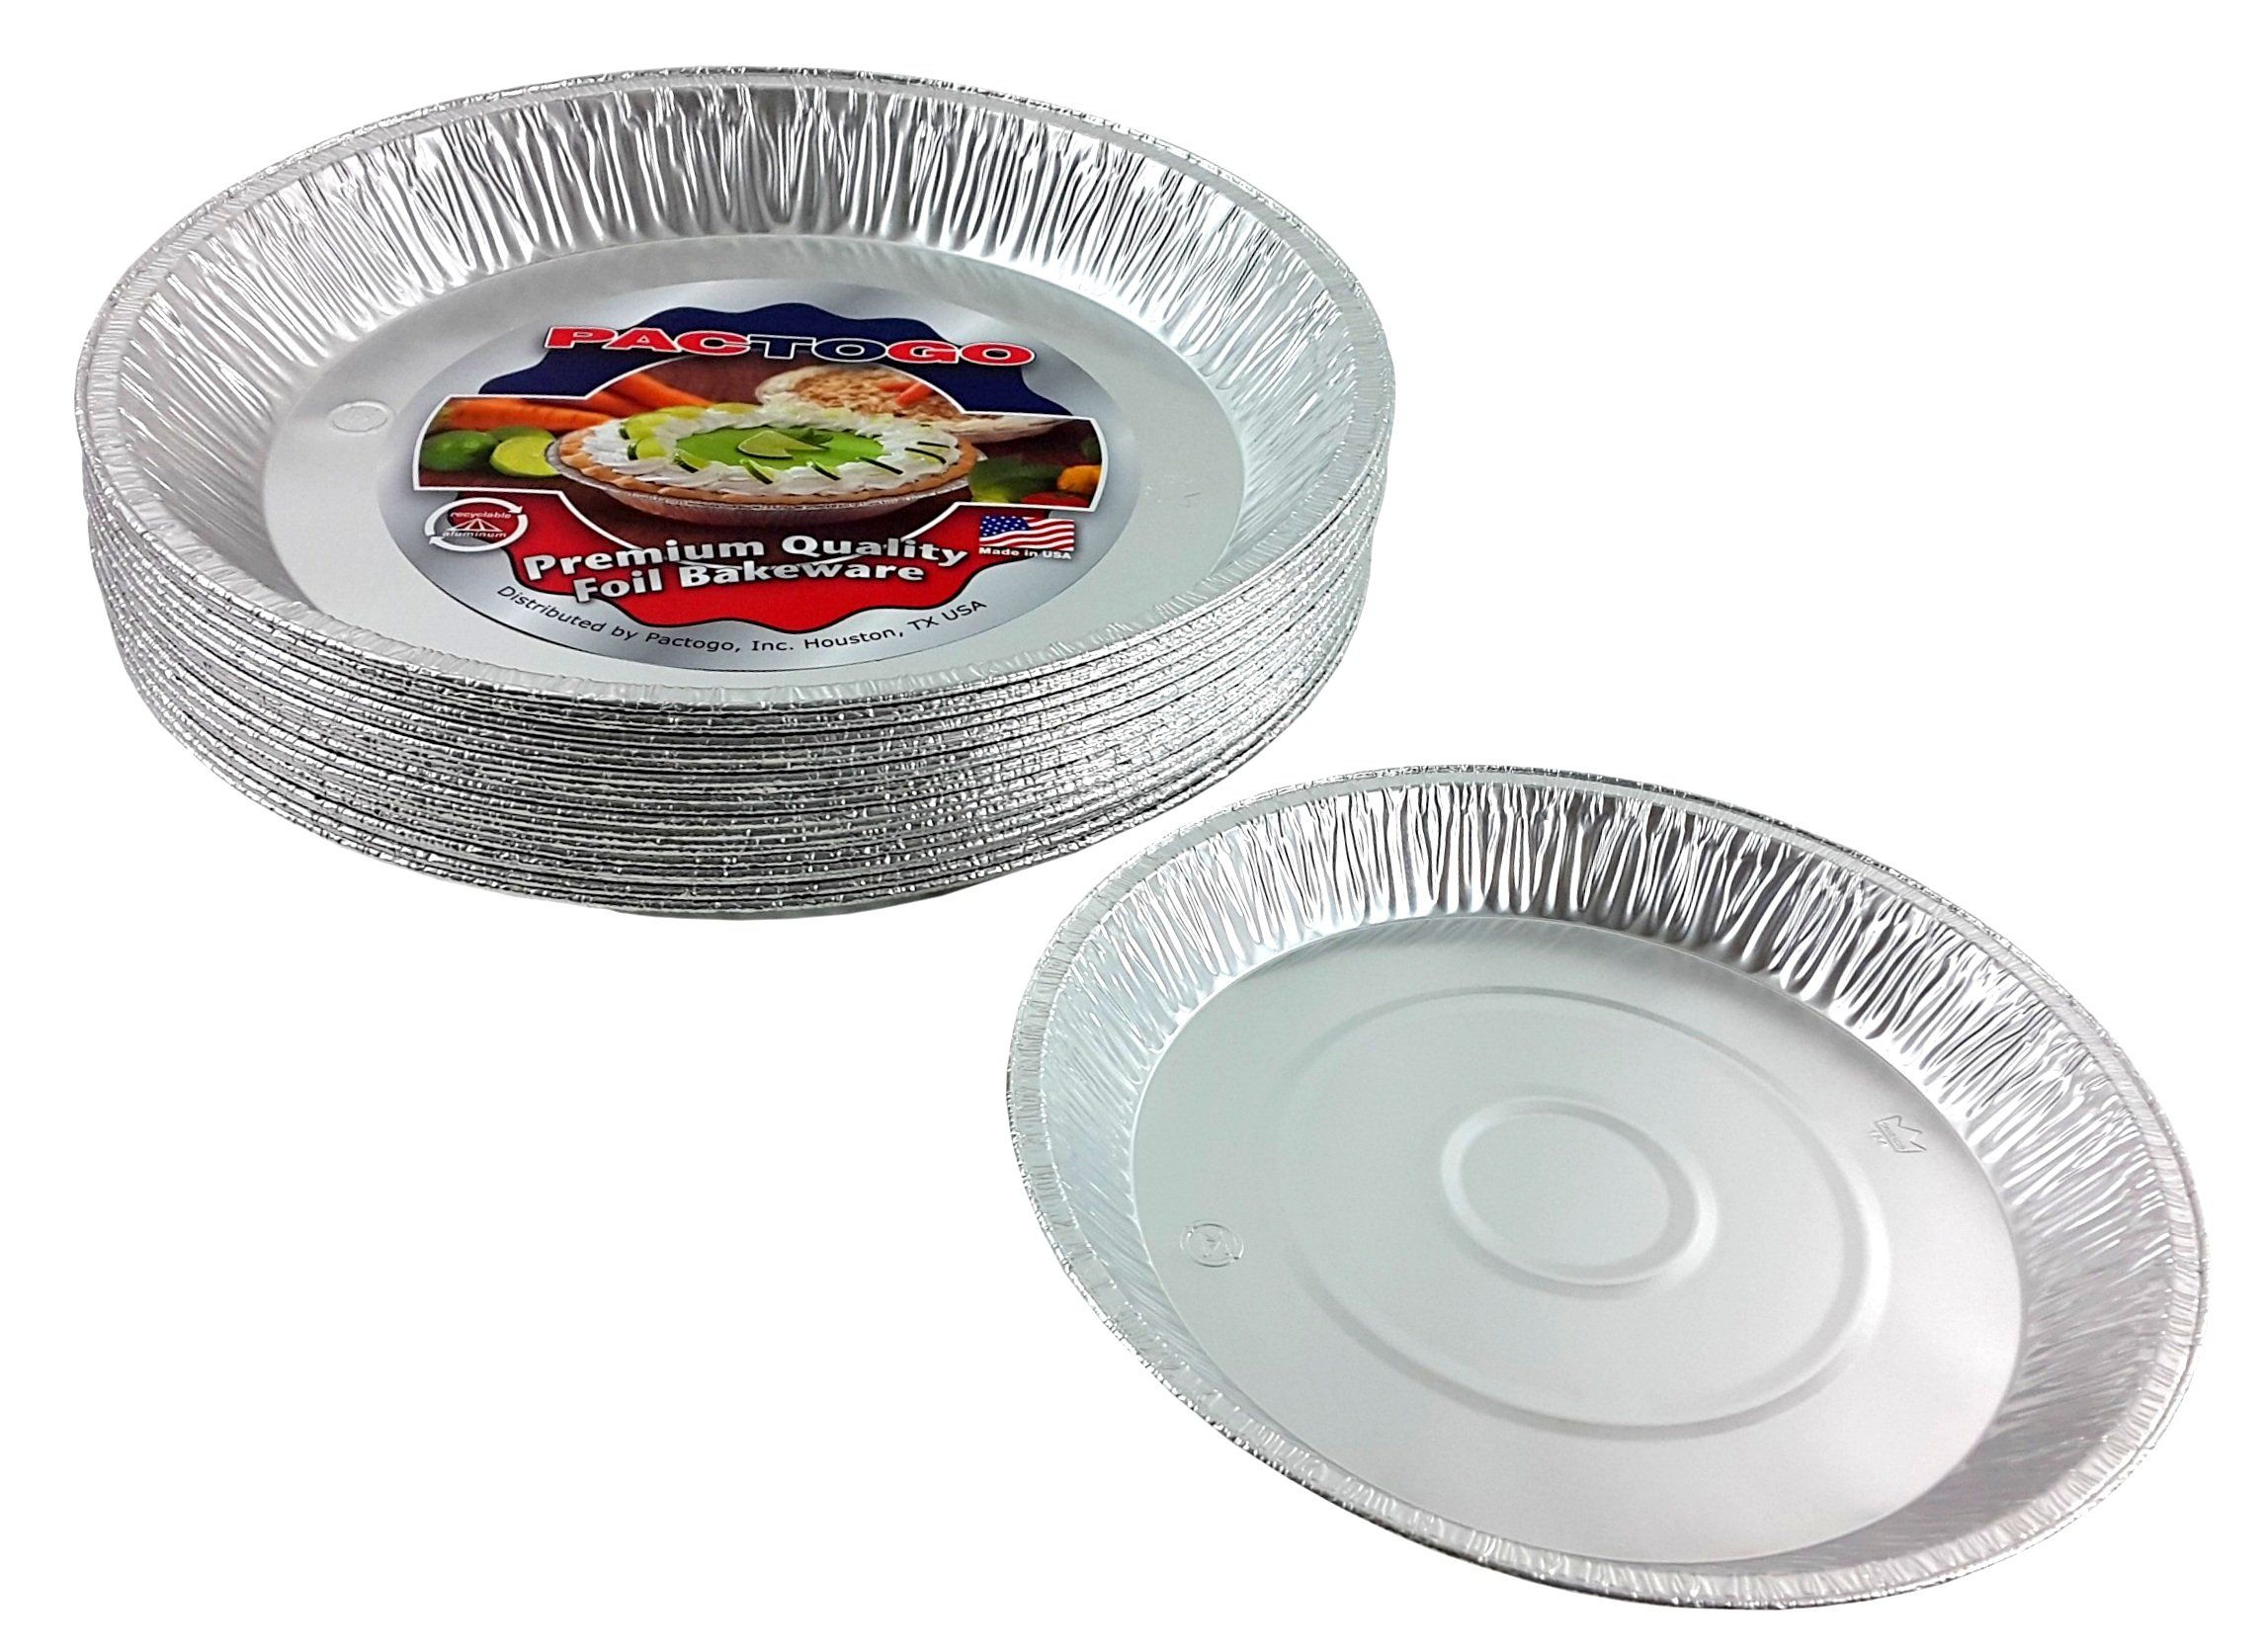 Pactogo 12'' Aluminum Foil Pie Pan Extra-Deep Disposable Tin Plates (Pack of 500) by PACTOGO (Image #4)